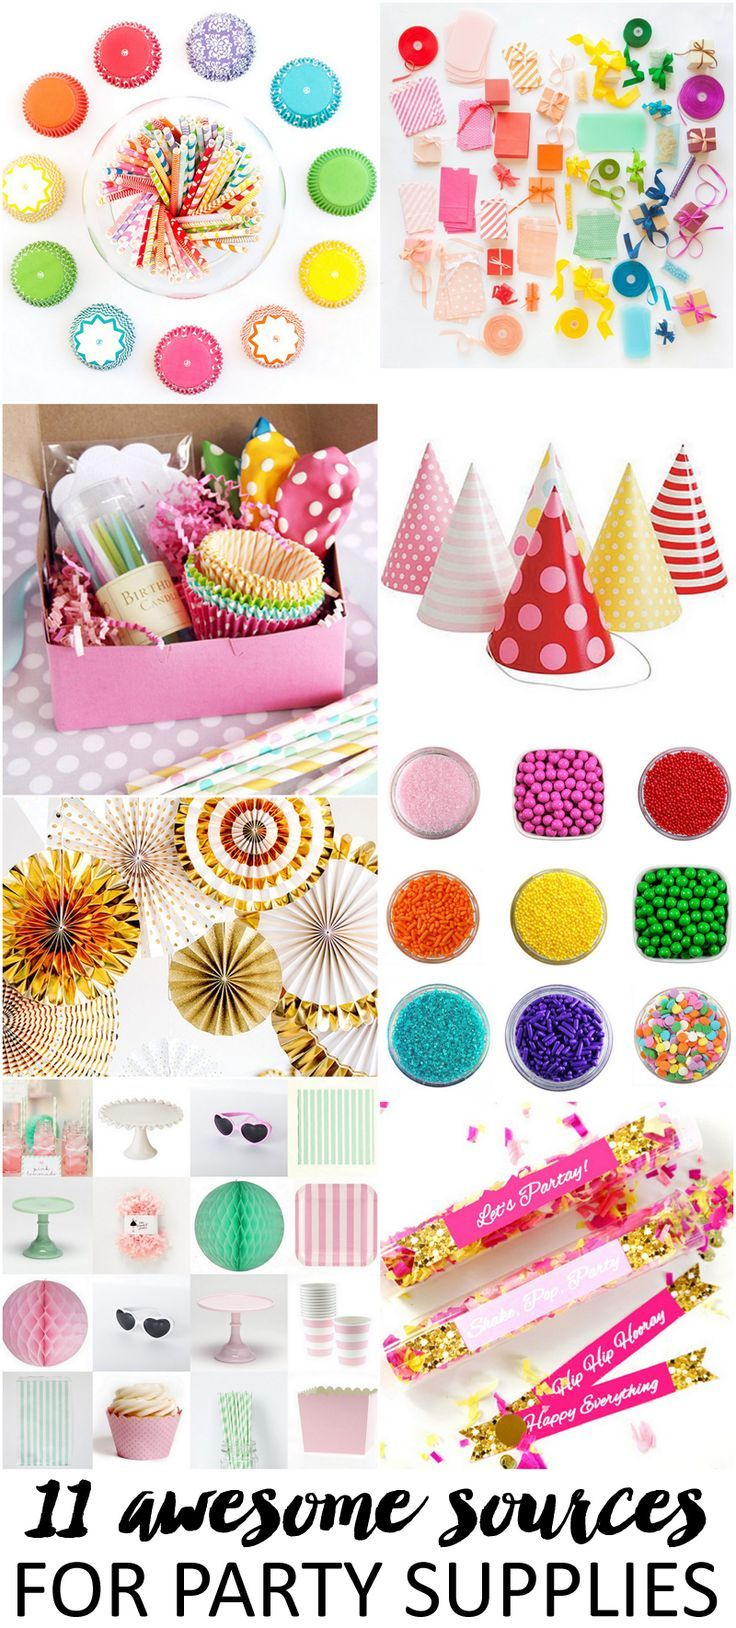 11 Awesome Sources for Party Supplies